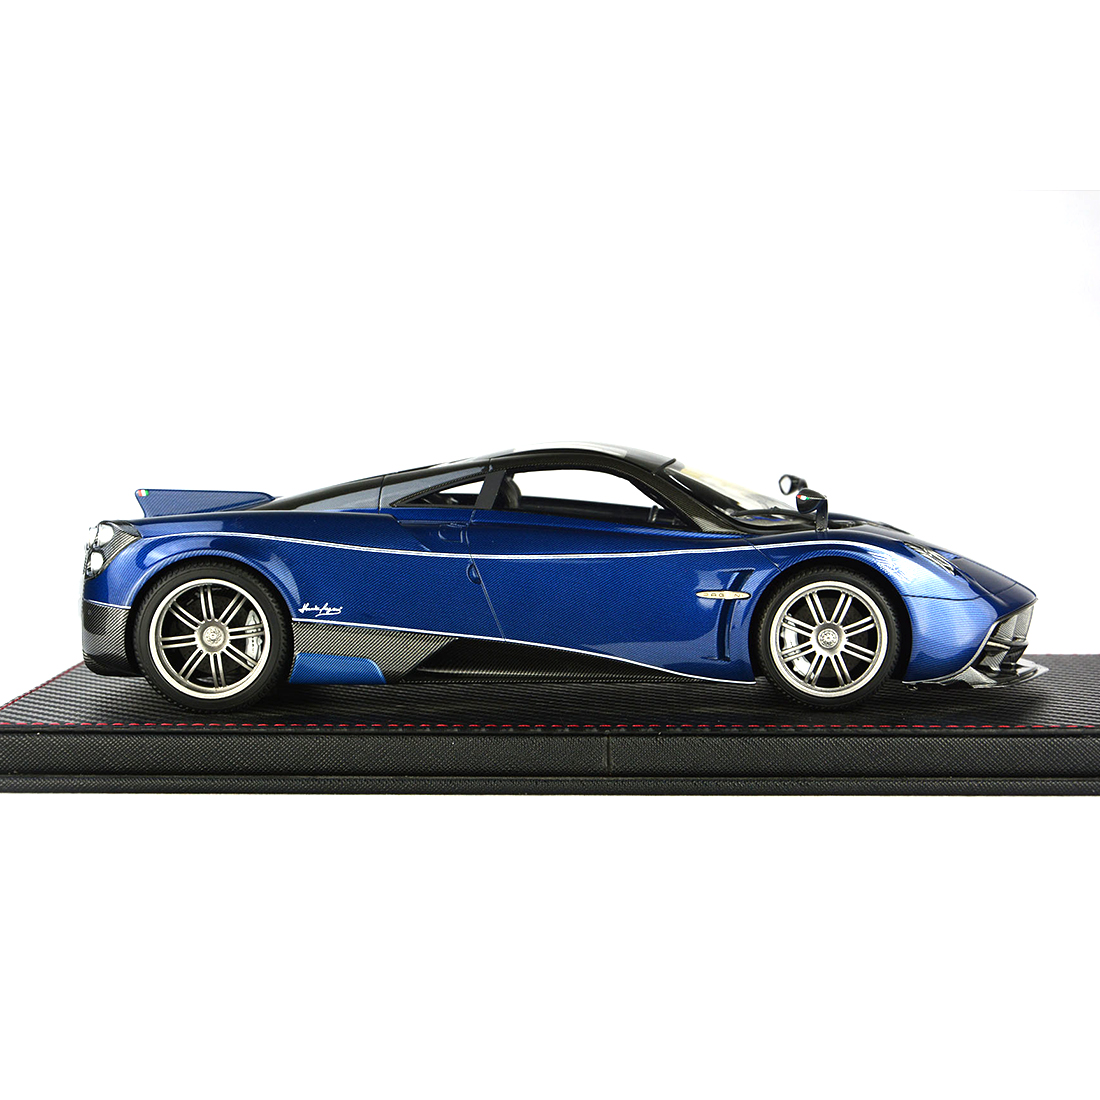 1:18 Car Model Pagani HUAYRA Model Collection Decor With Base Dust Cover Model Educational Toy Blue/Charcoal Grey/Purple Red - 5